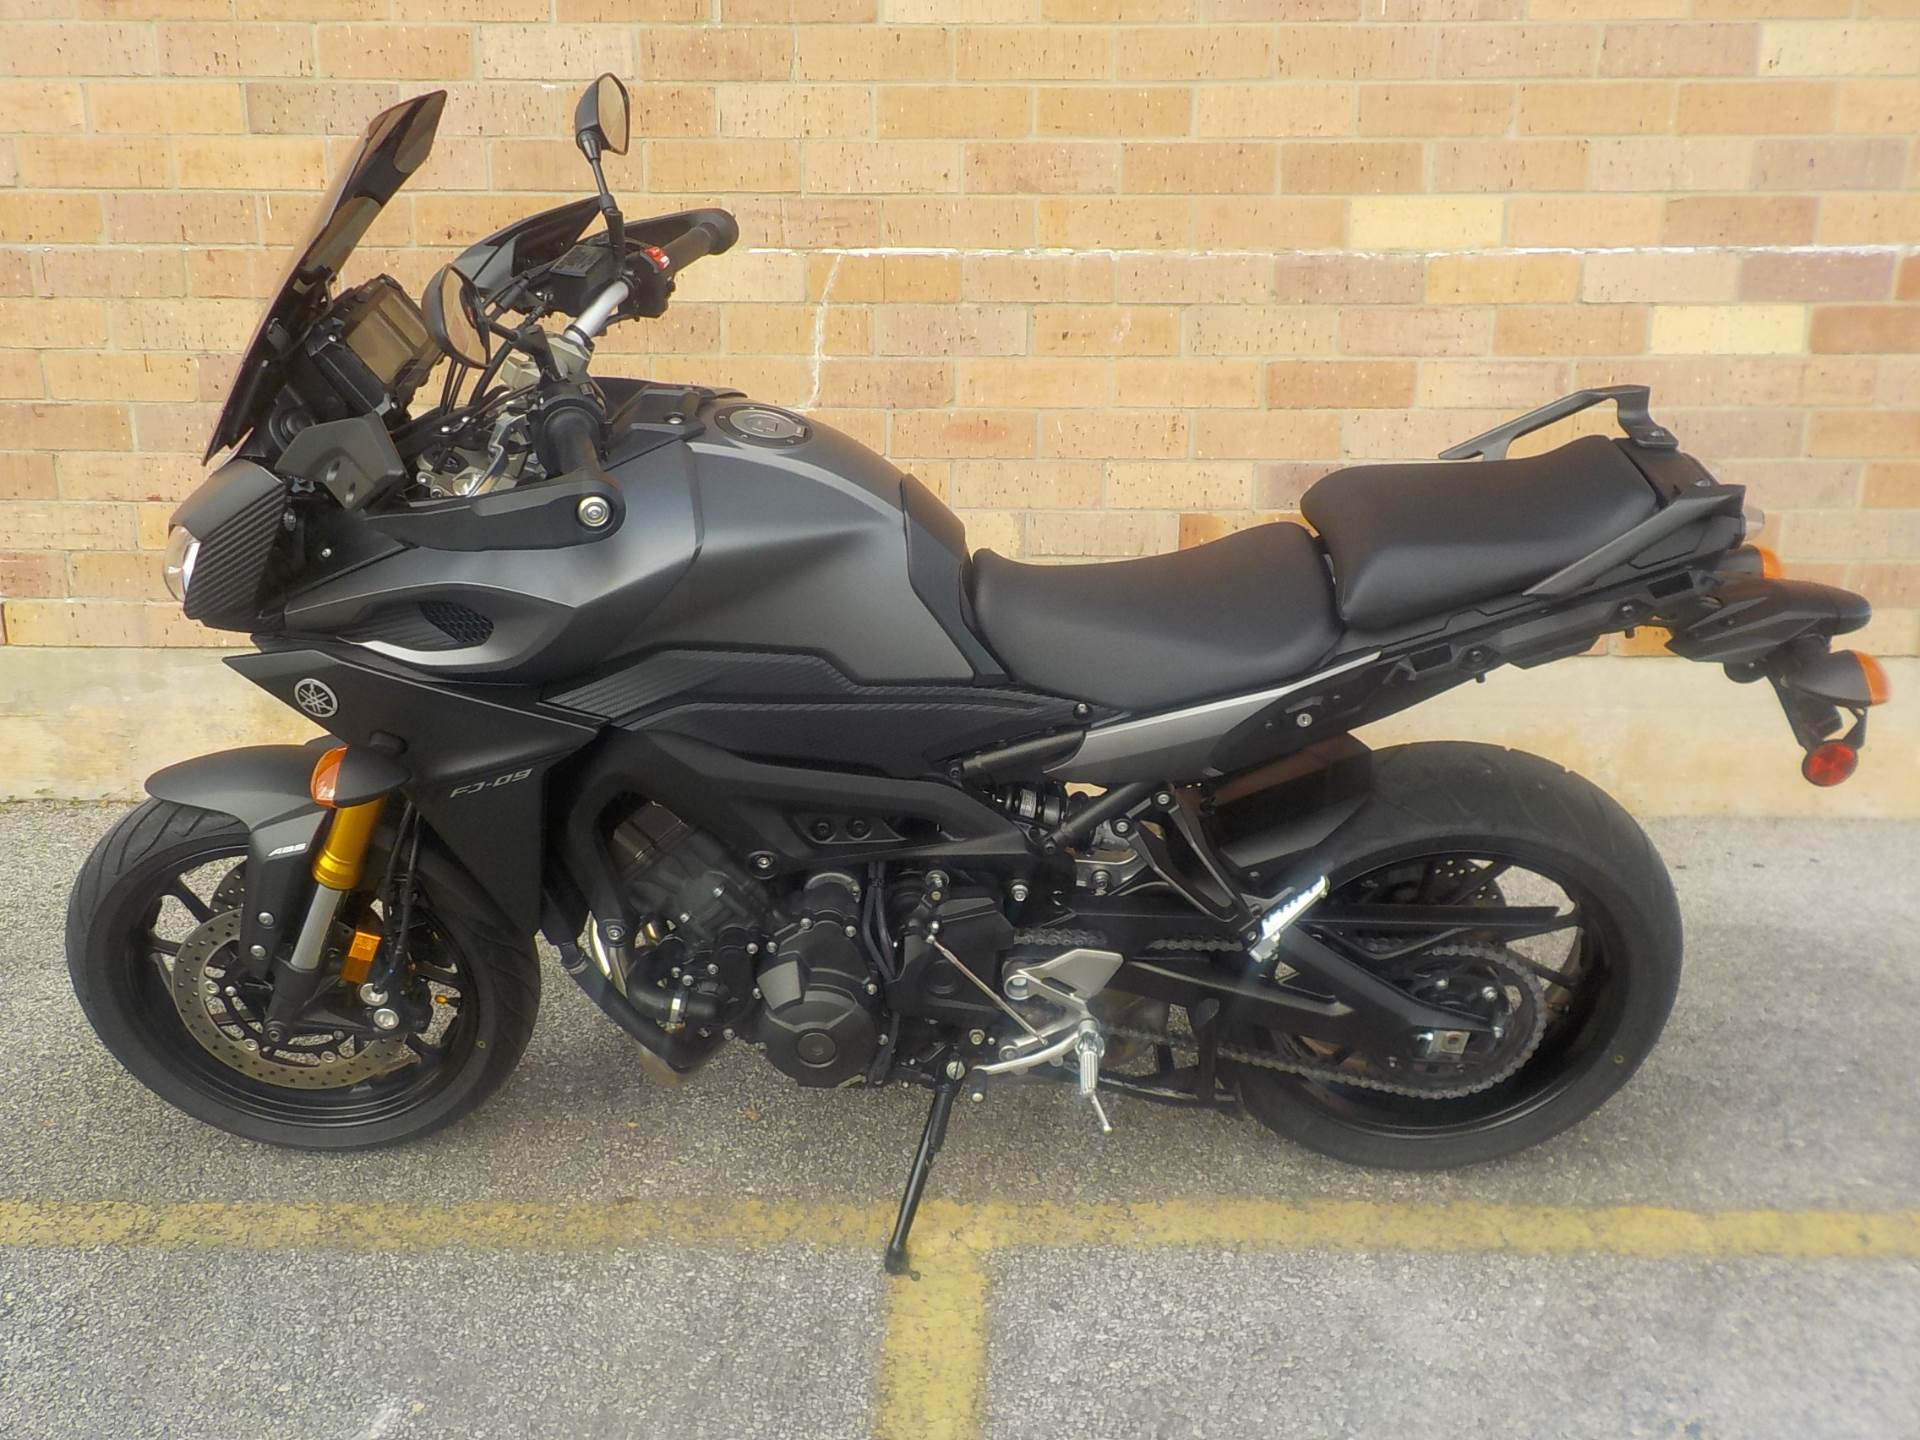 2015 Yamaha FZ-09 in San Antonio, Texas